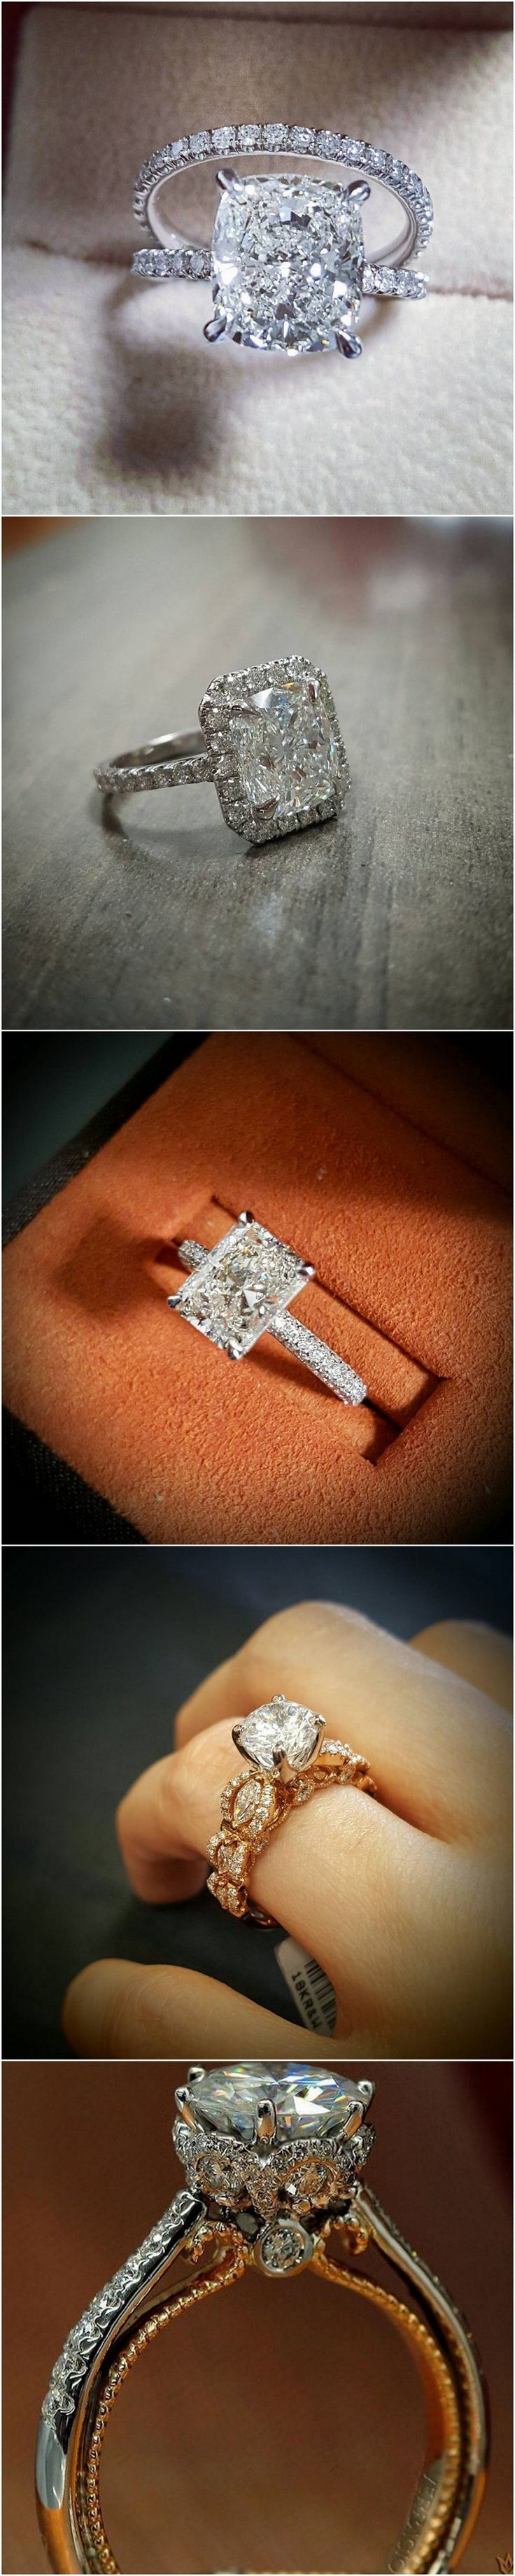 beautiful engagement e rings gallery new ideas best on vintage antique fresh most pinterest